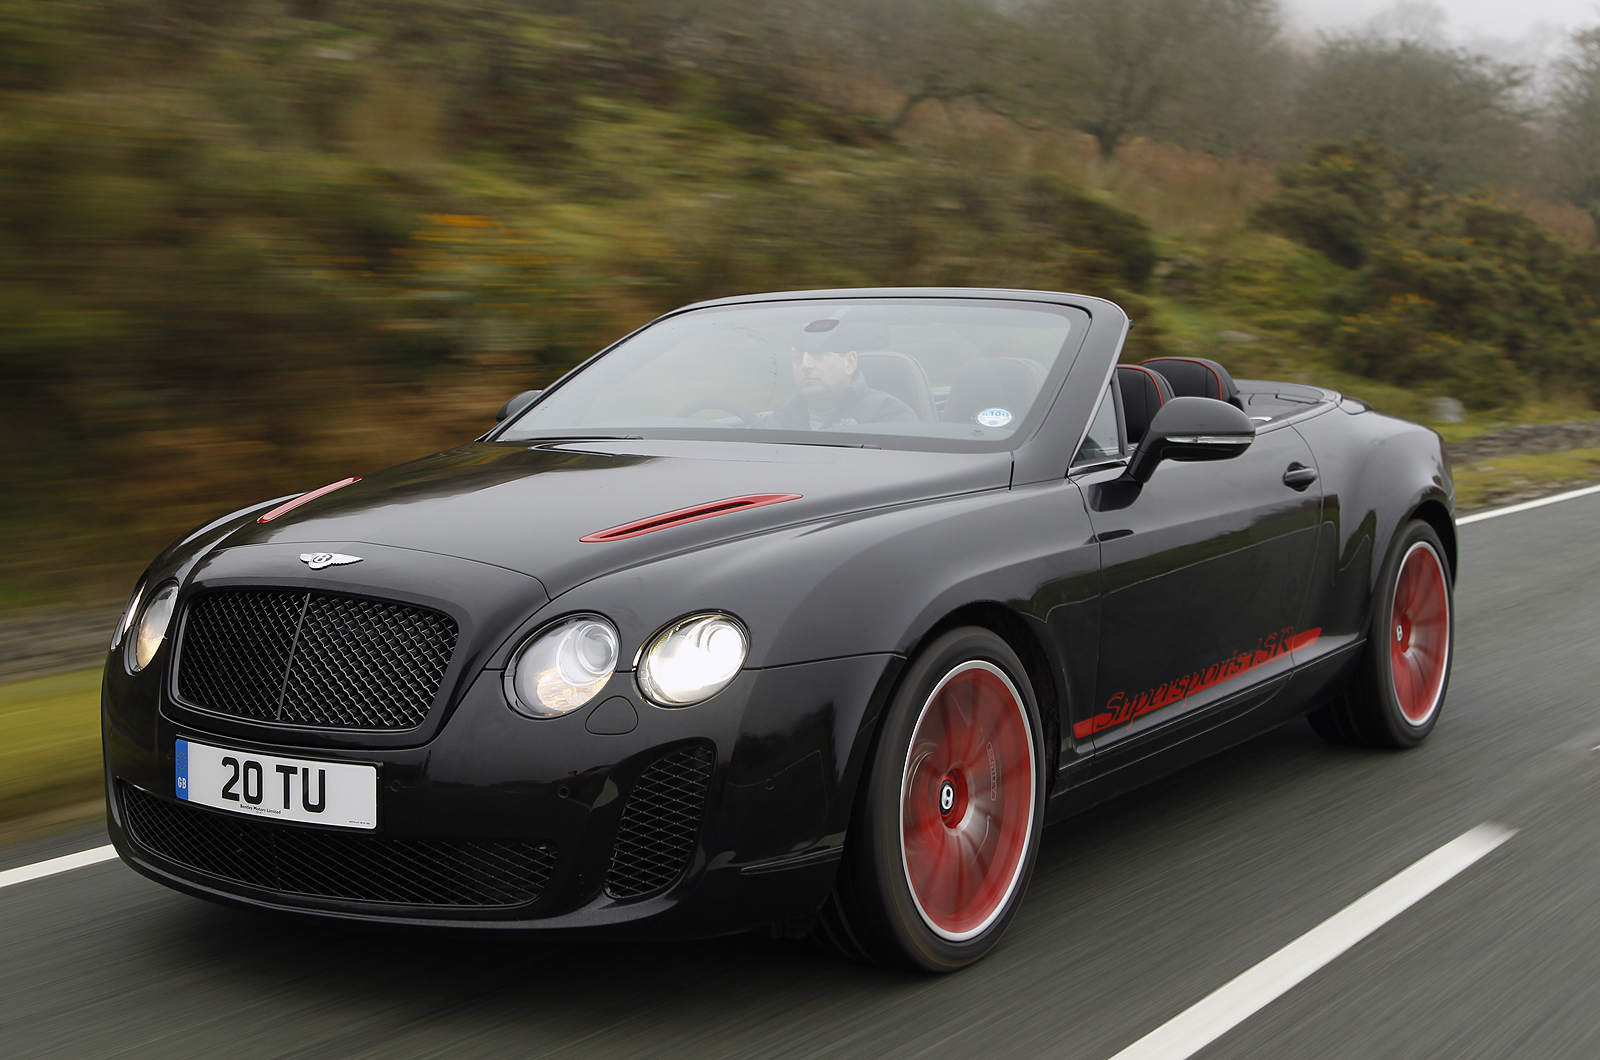 alexandre bentley wikipedia coupe gt wiki pr continental convertible flickr supersport price